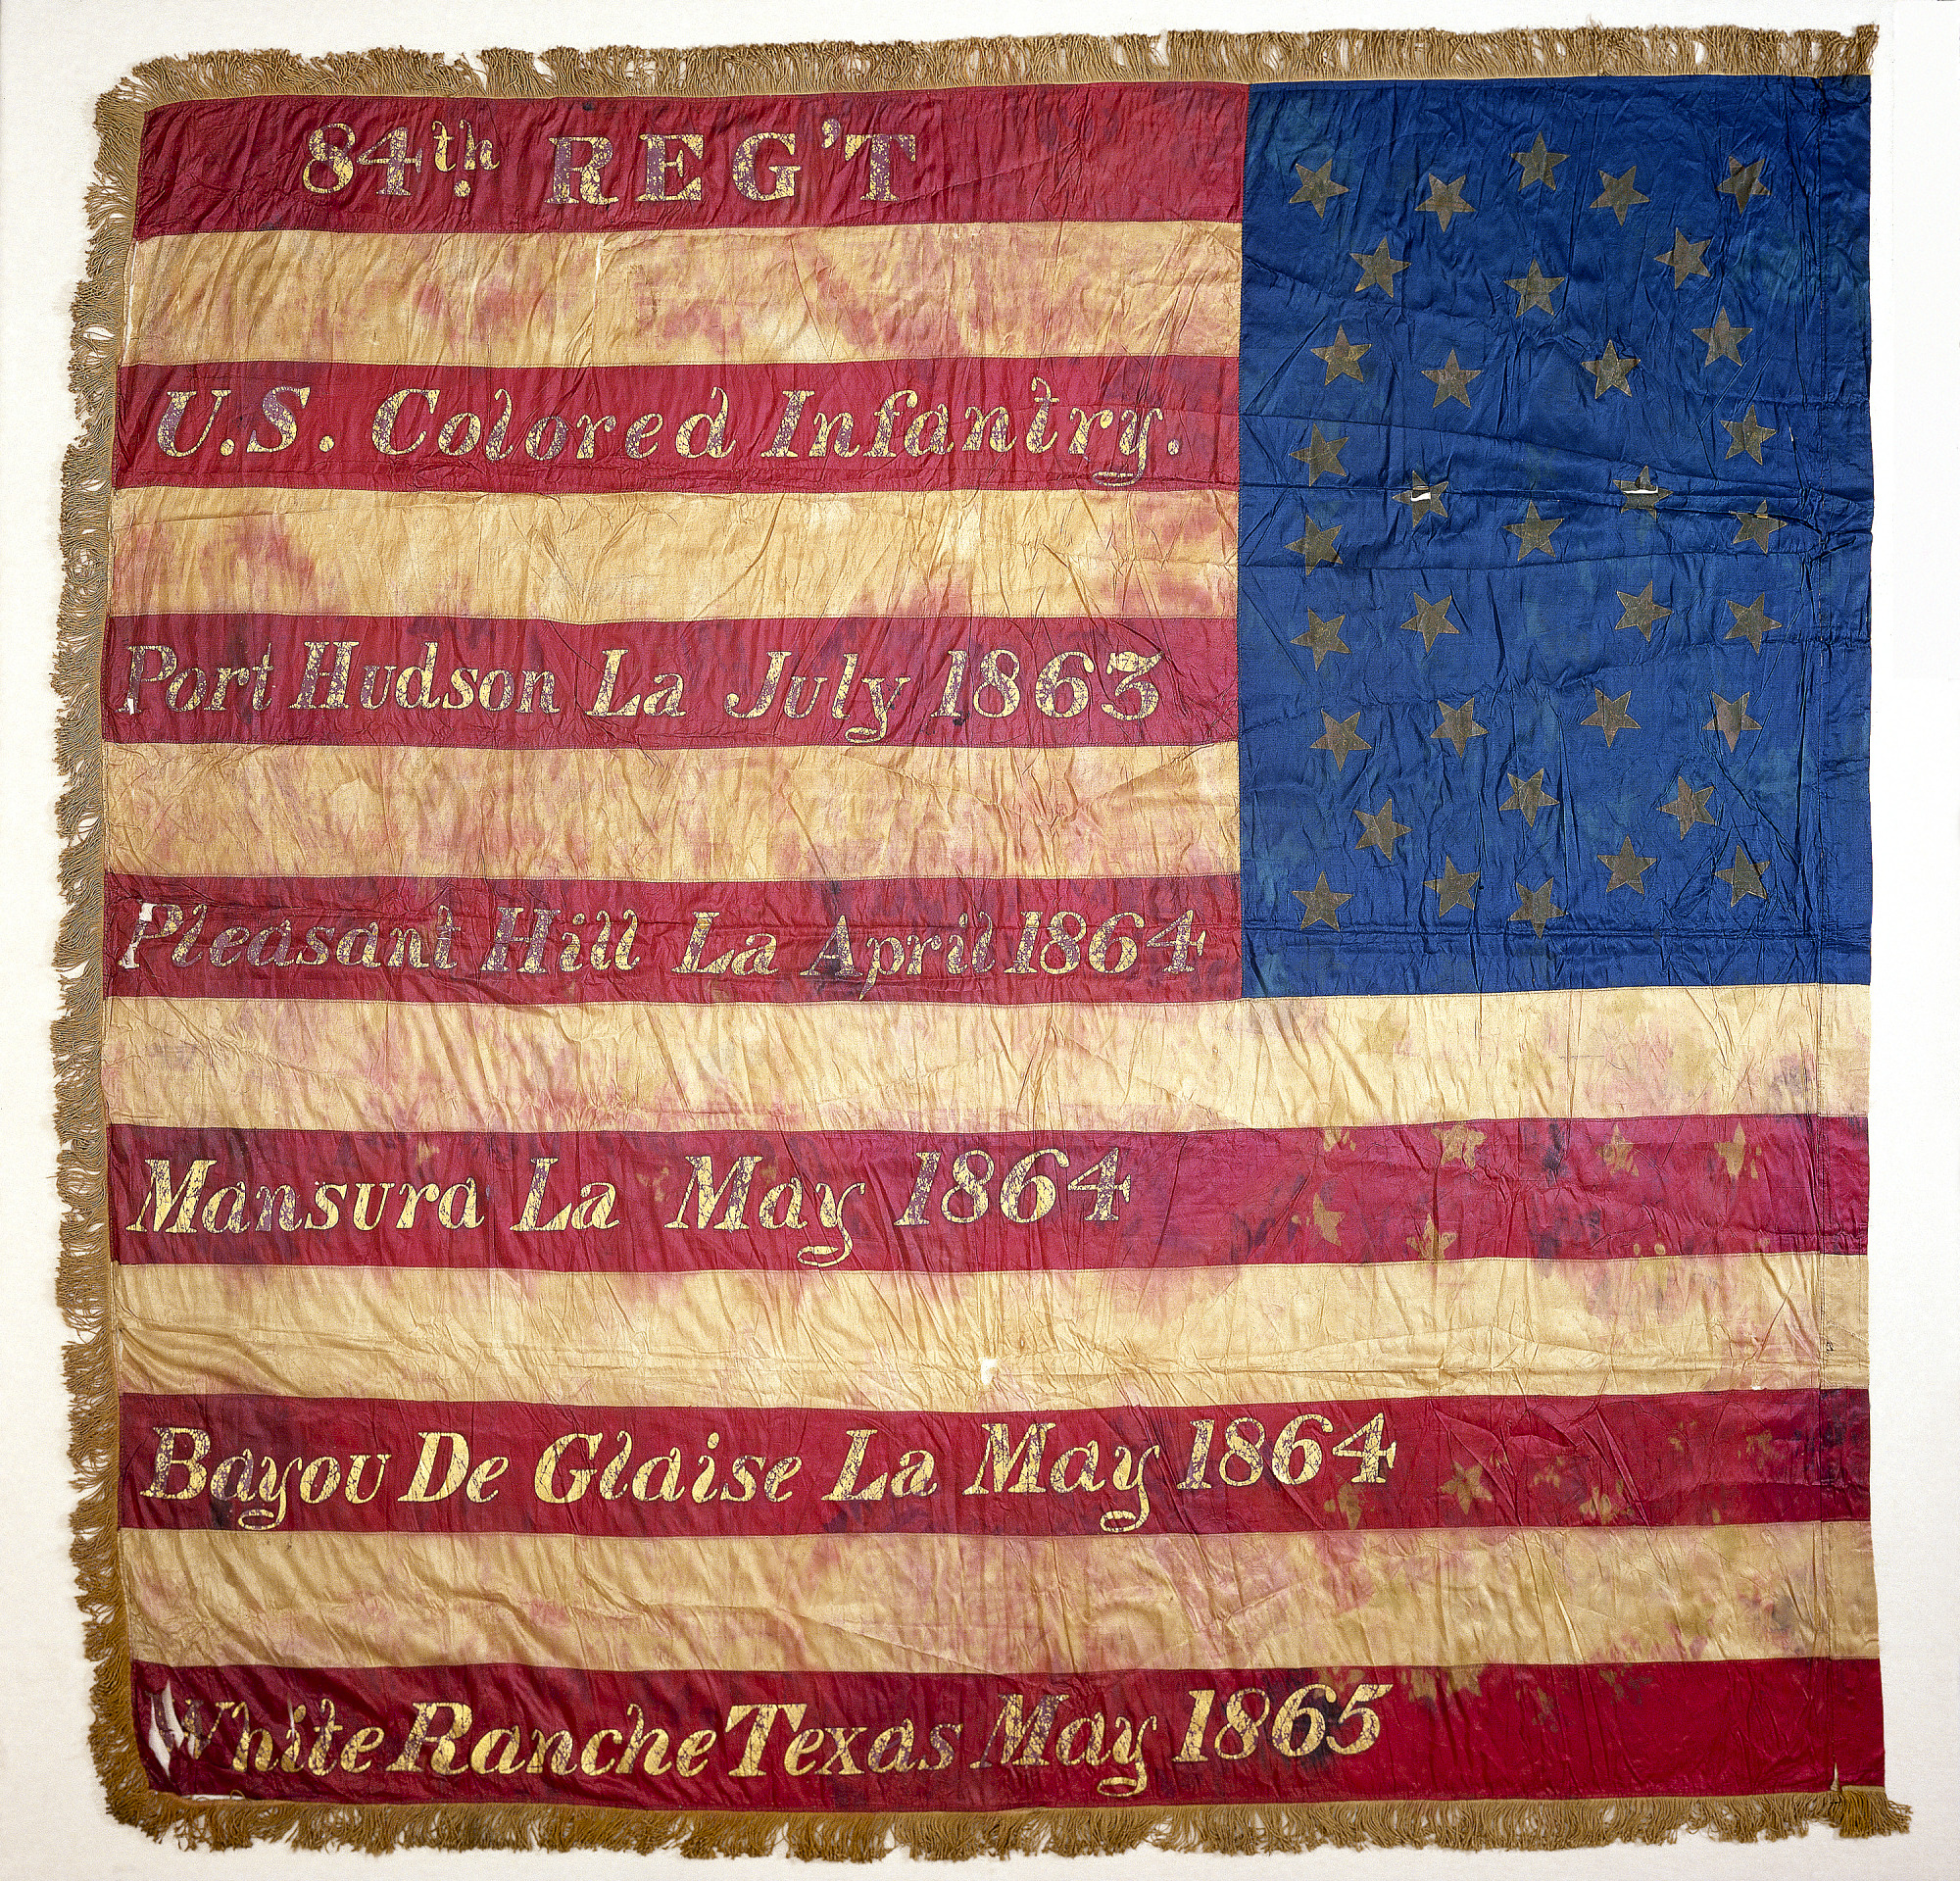 images for United States Colored Troops Flag